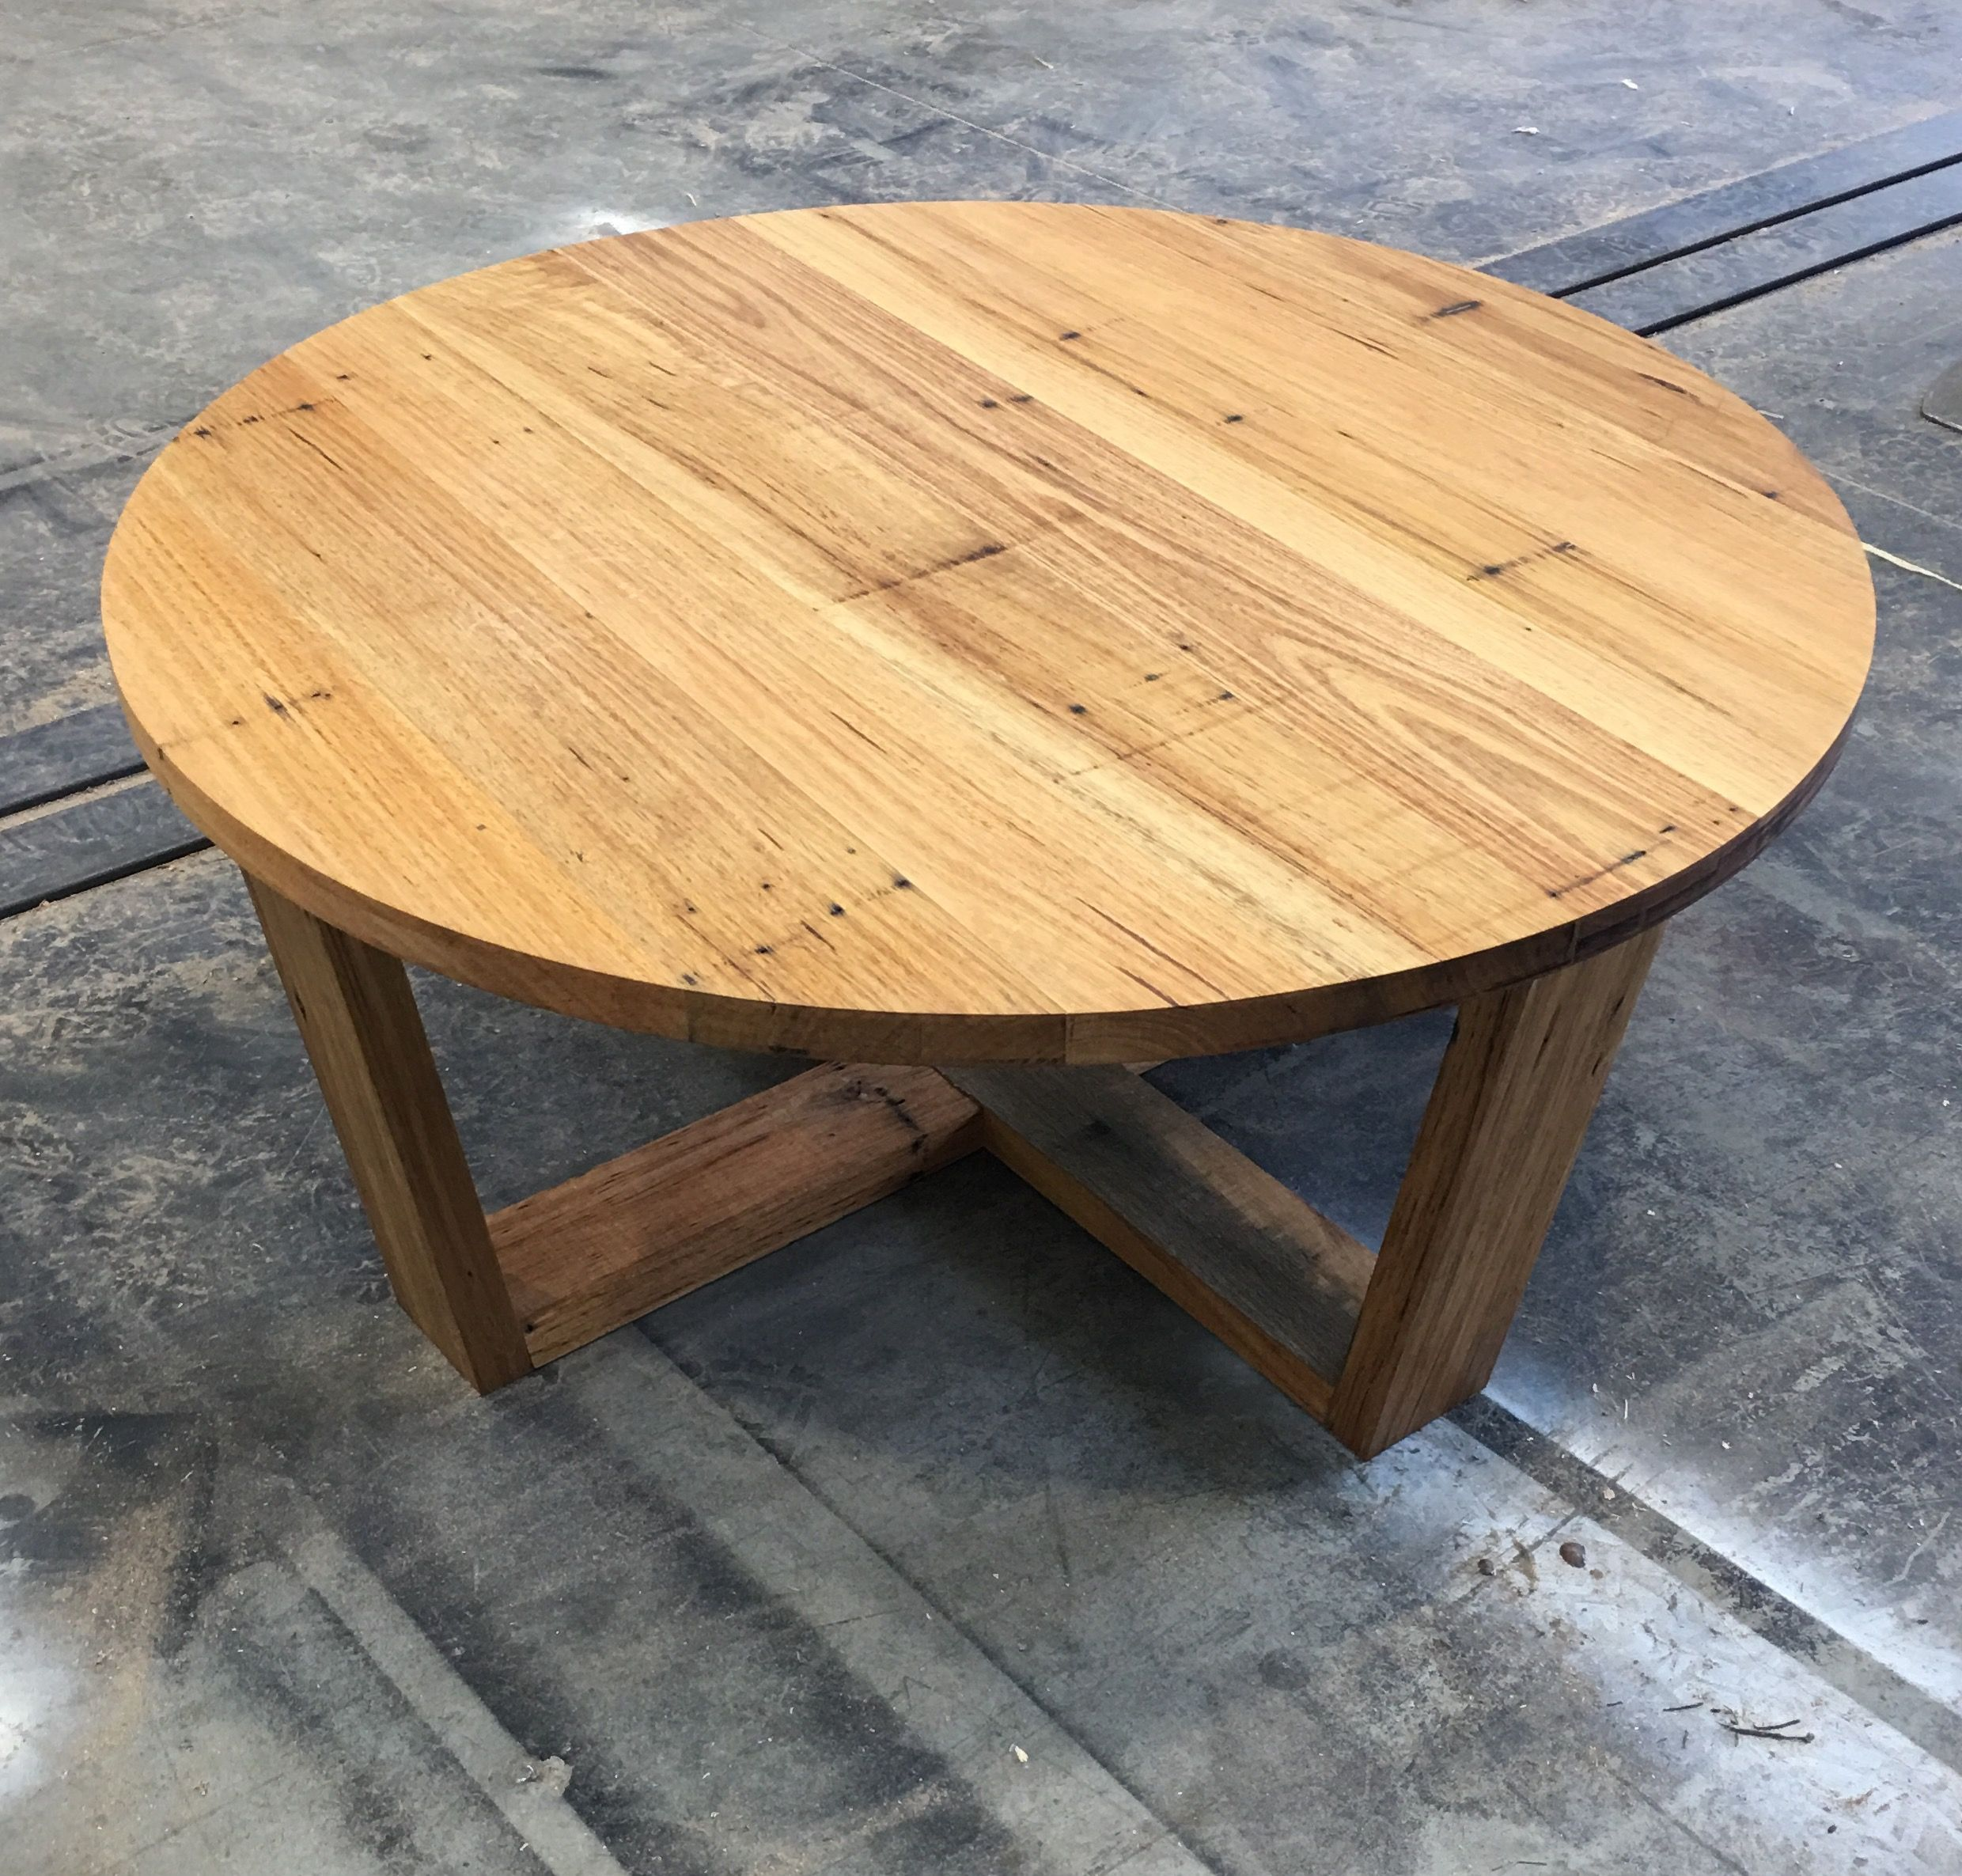 Reclaimed Wood Round Coffee Table Download Recycled Wormy Chestnut Round Coffee Table 10 Q Round Wood Coffee Table Coffee Table Wood Round Coffee Table [ 2371 x 2480 Pixel ]